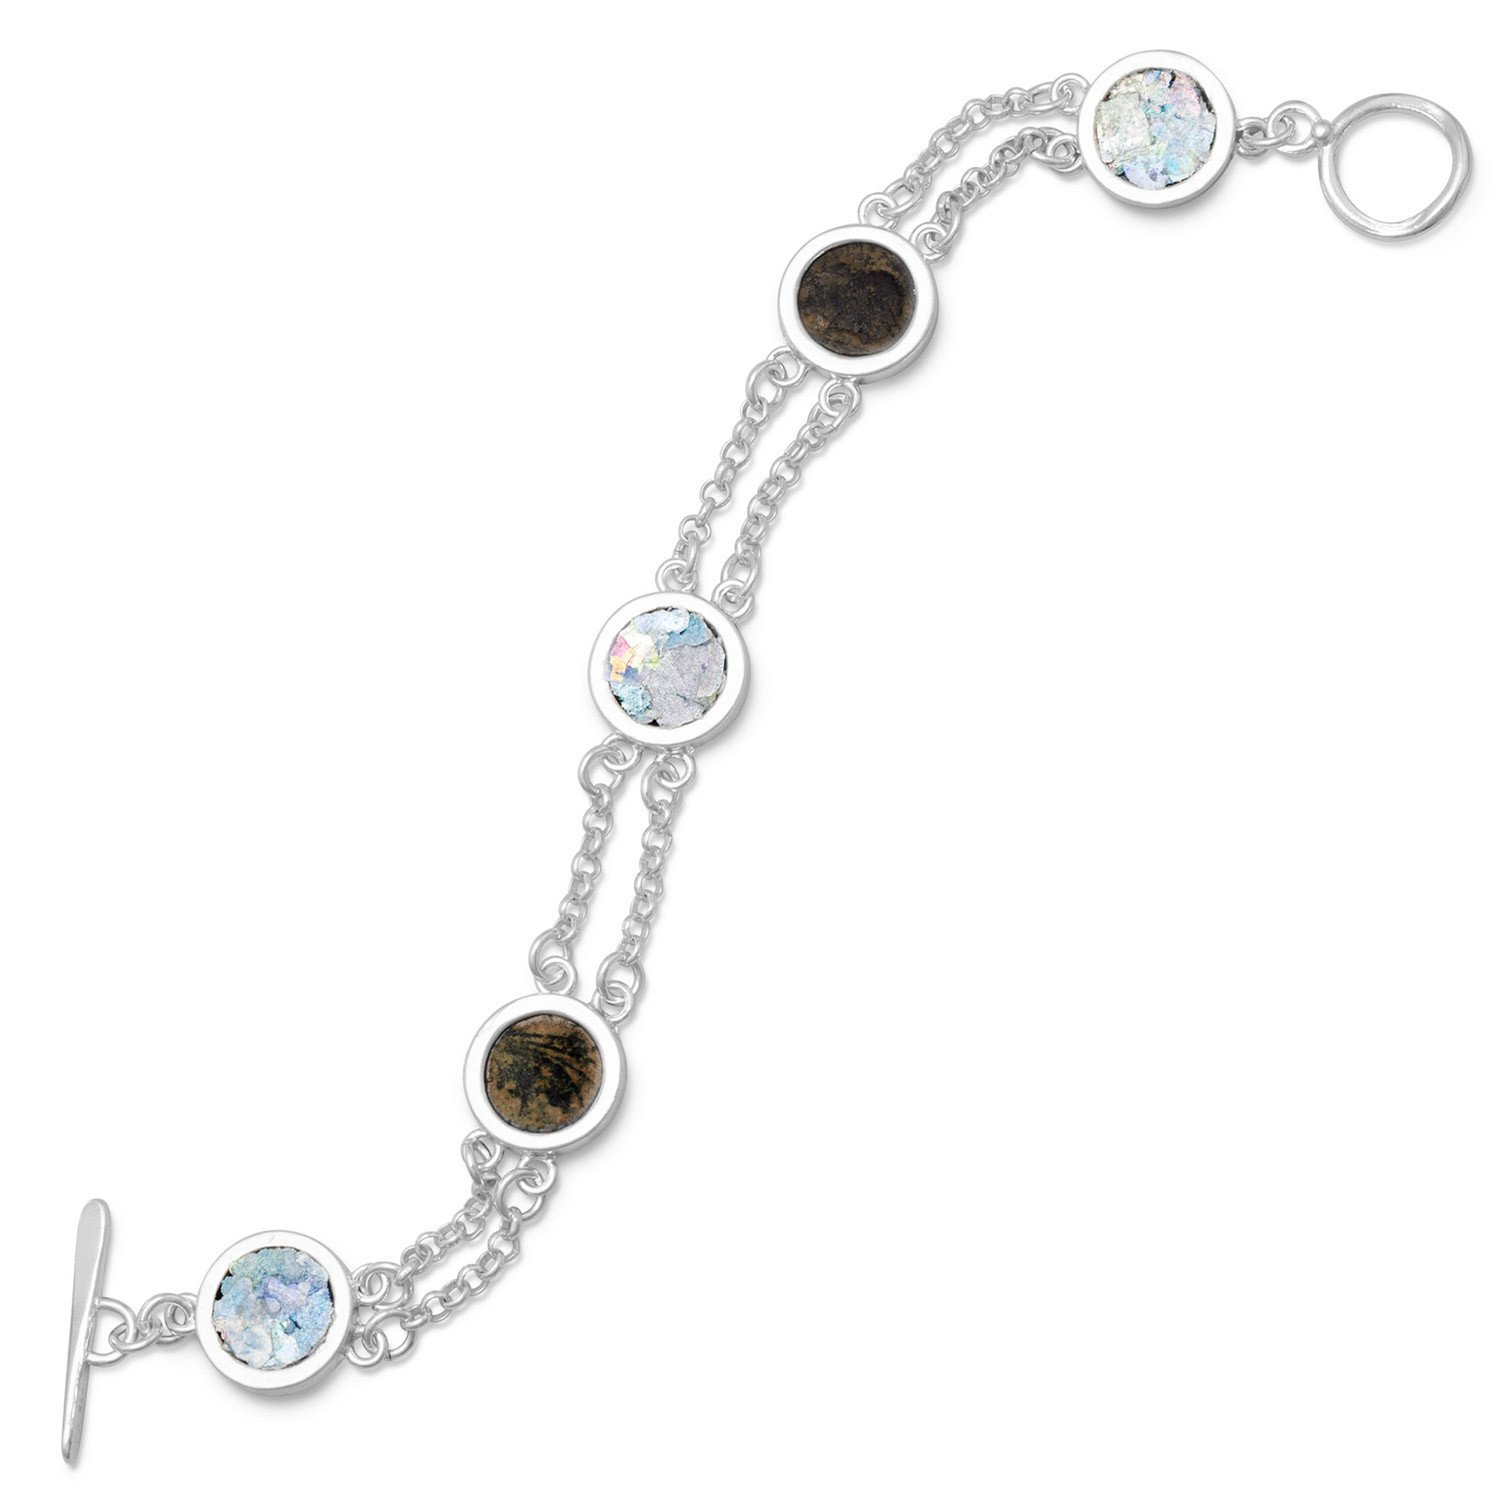 7.75″ 2 Strand Toggle Bracelet with Ancient Roman Glass & Antique Roman Coins